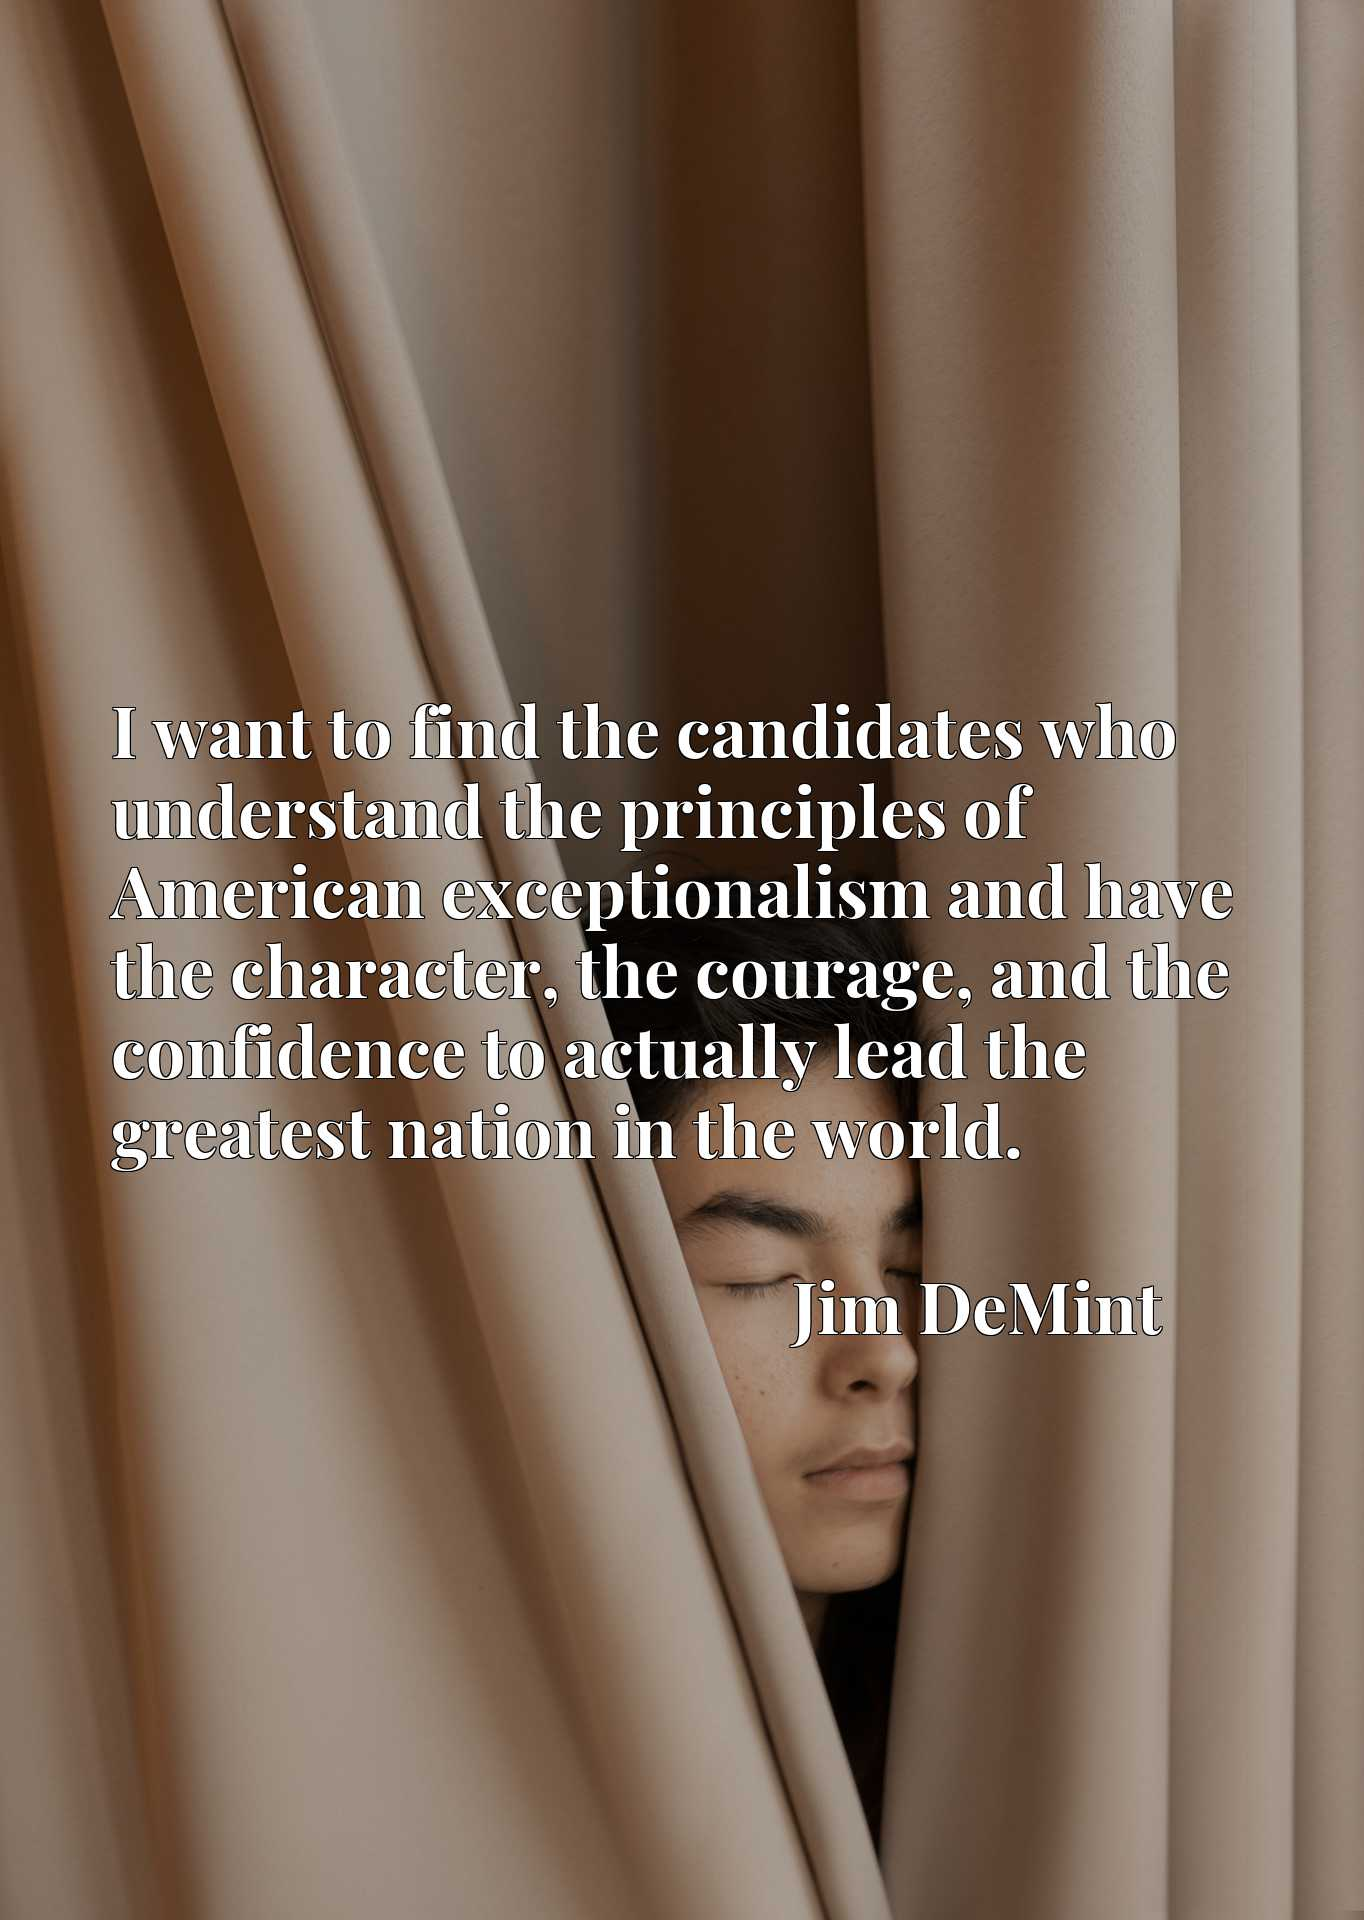 I want to find the candidates who understand the principles of American exceptionalism and have the character, the courage, and the confidence to actually lead the greatest nation in the world.